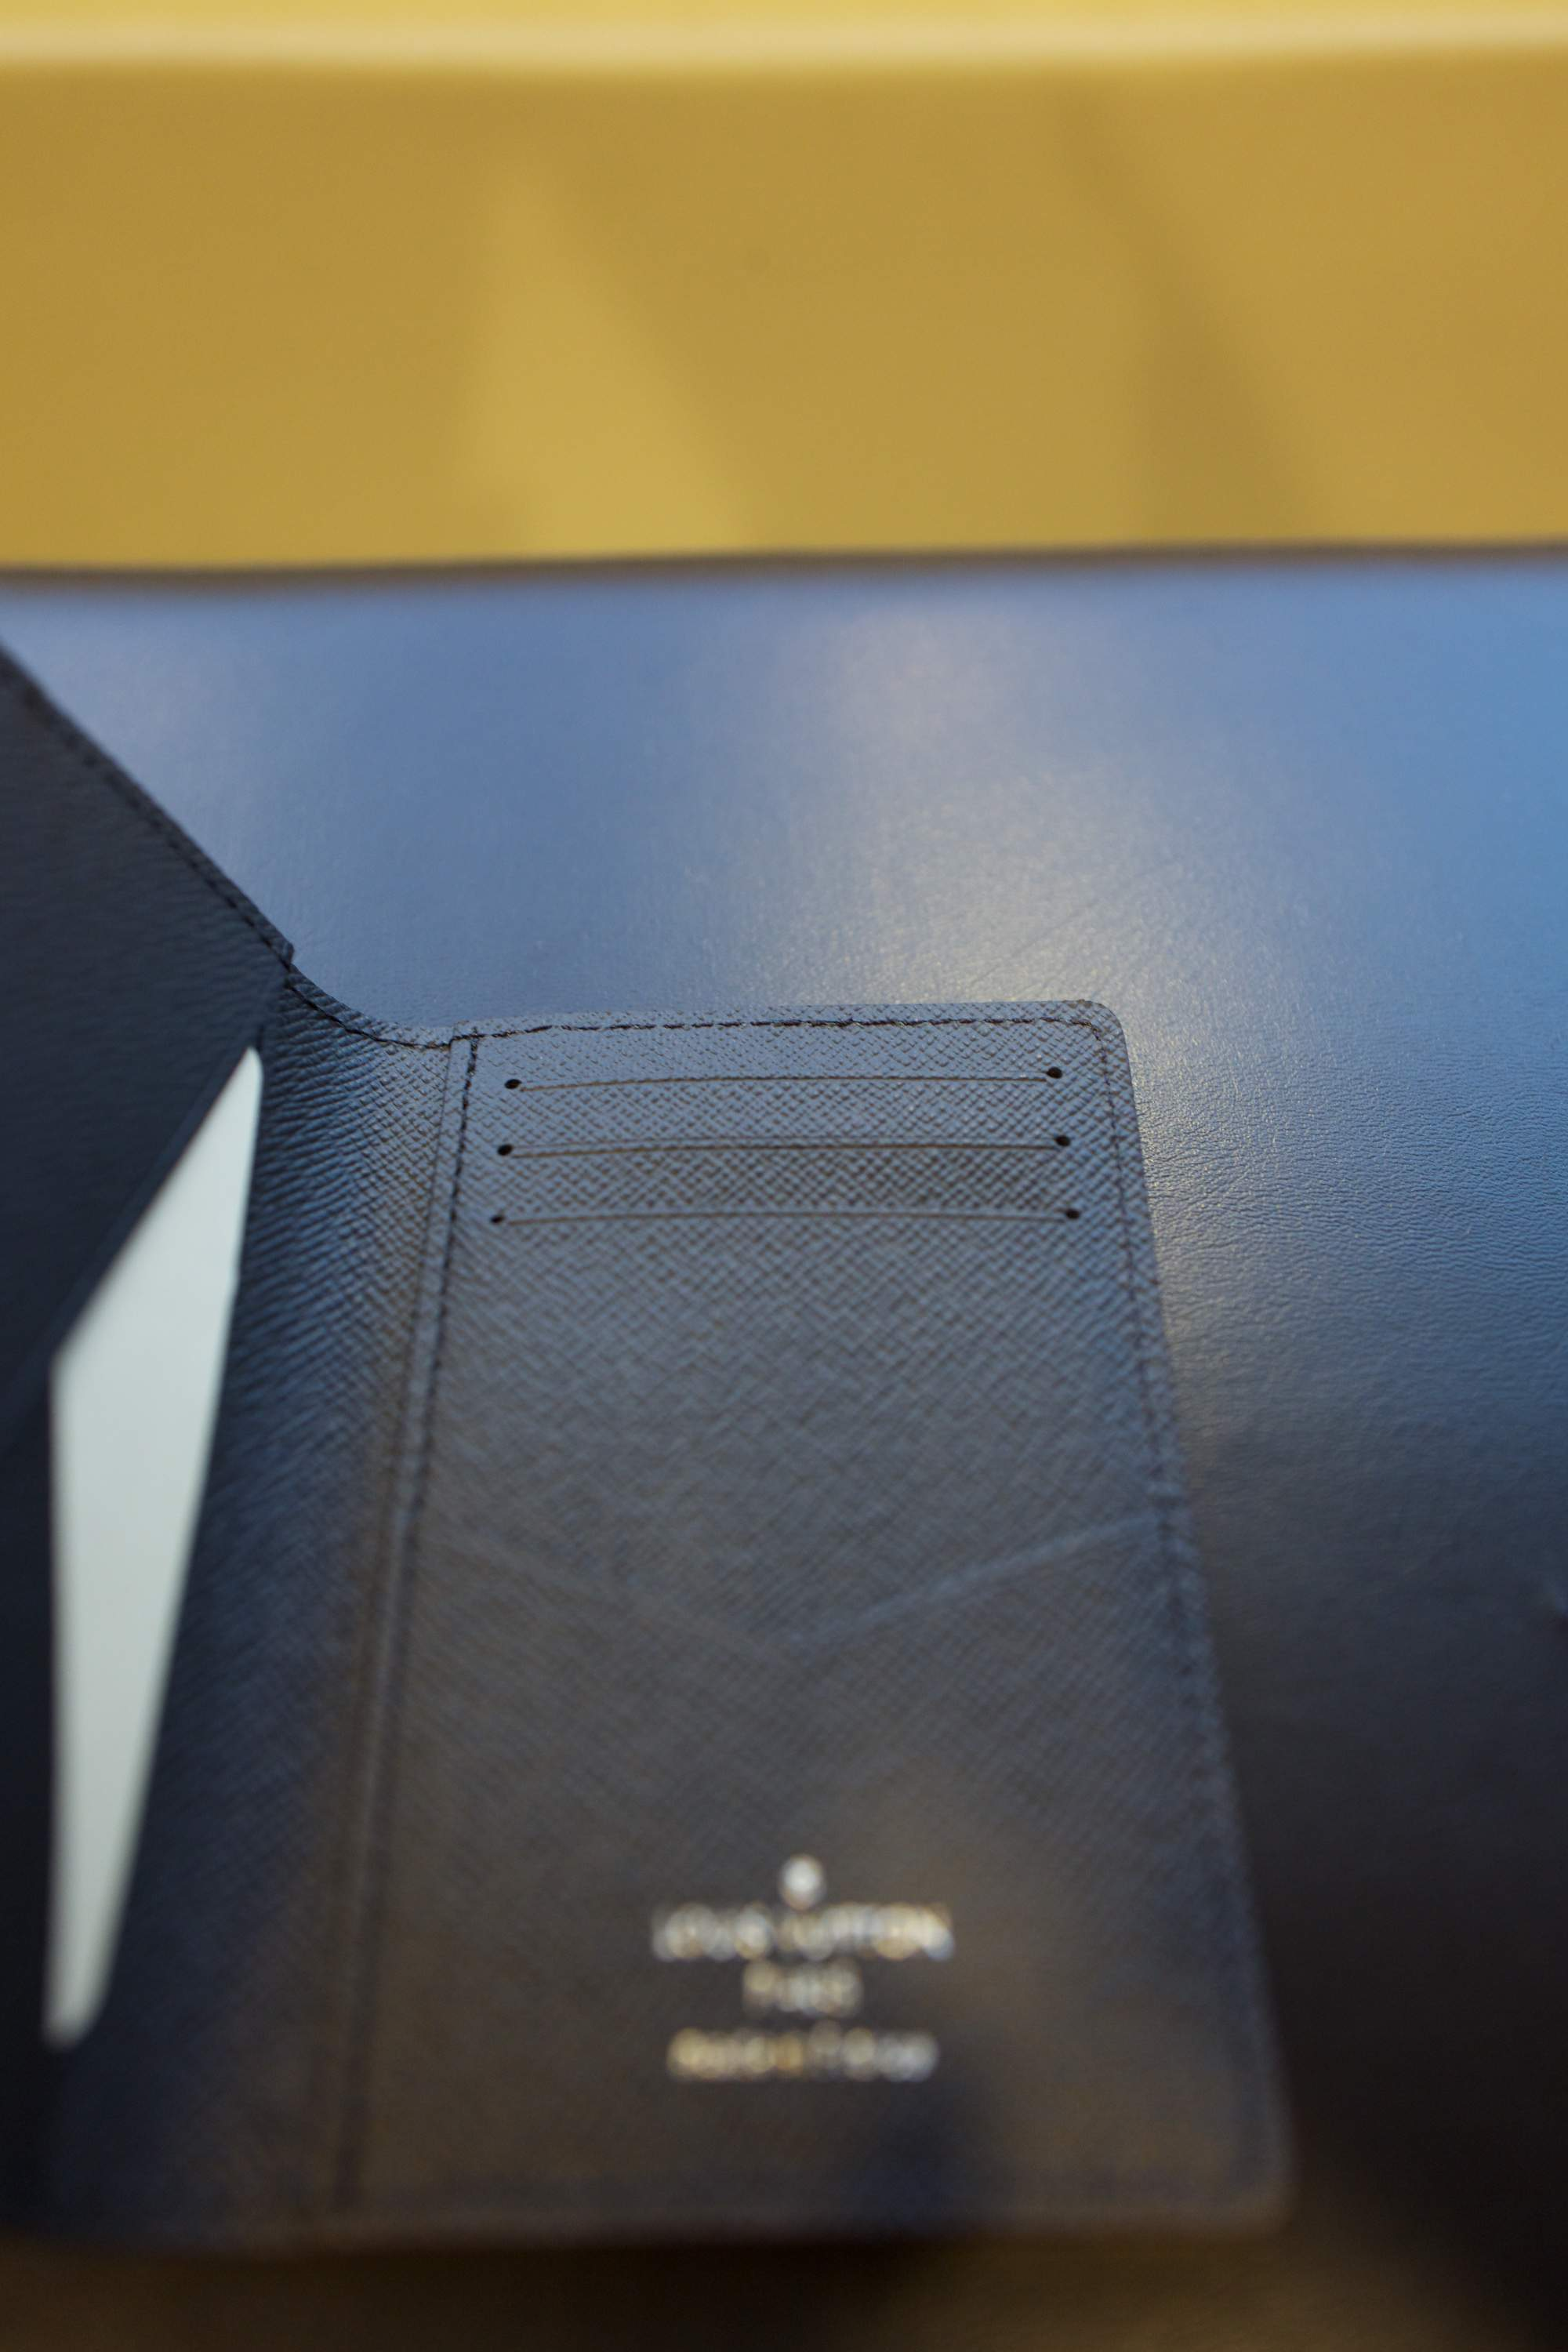 LV card holder6.jpg